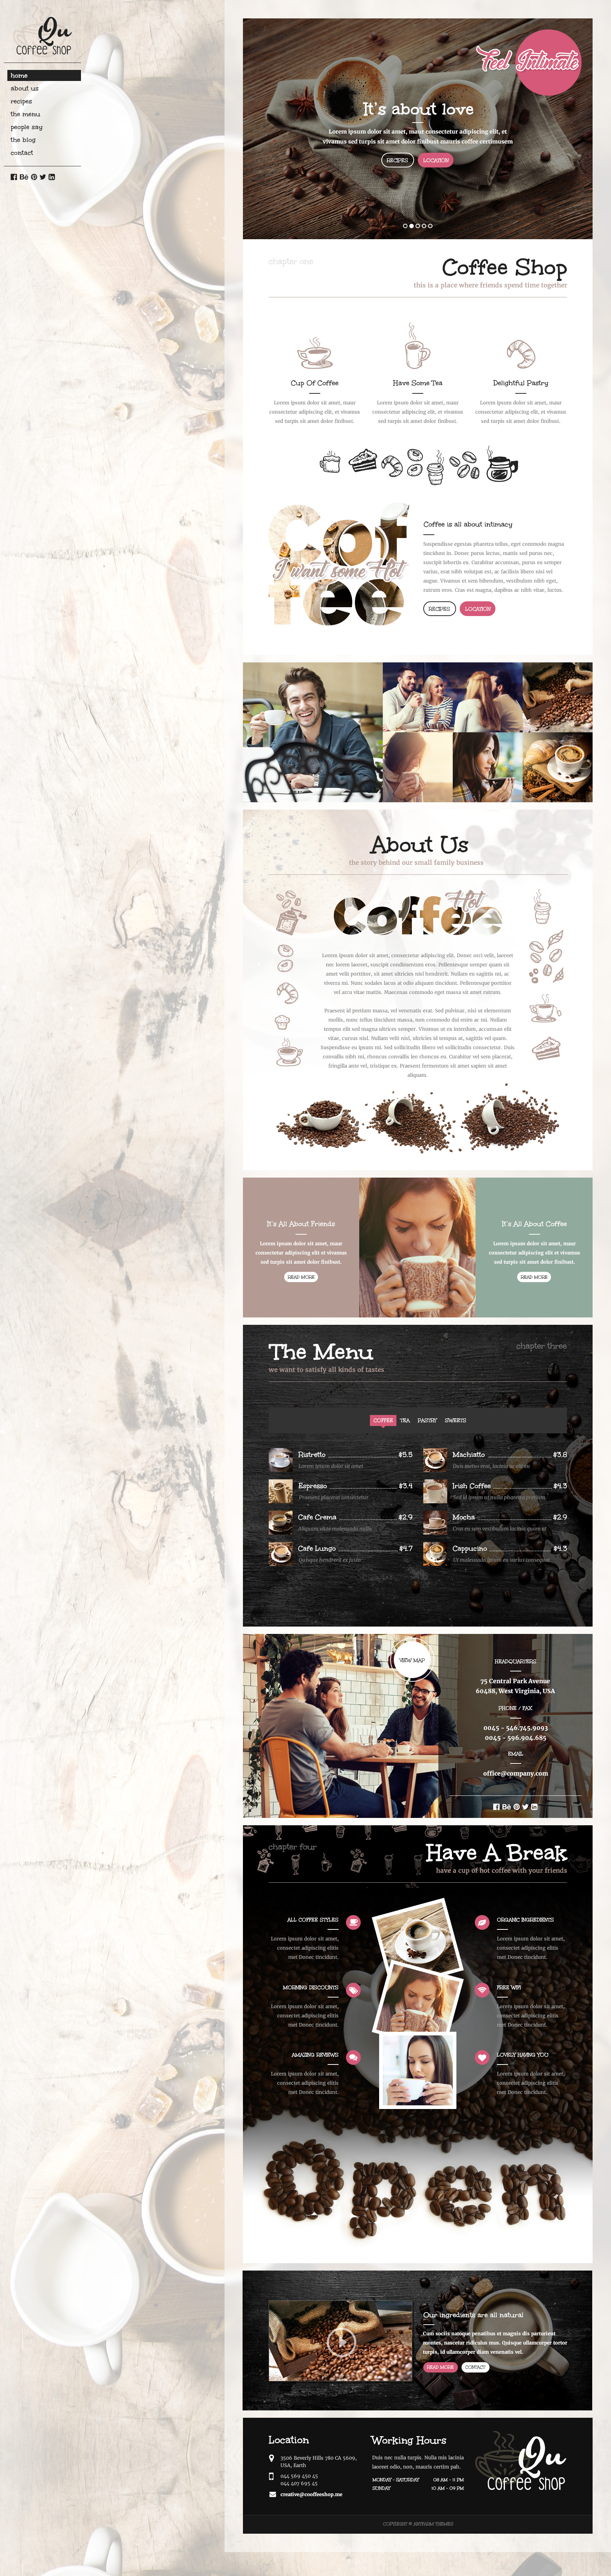 Niche concepts 7 psd templates by ant farm themeforest for Coffee shop design software